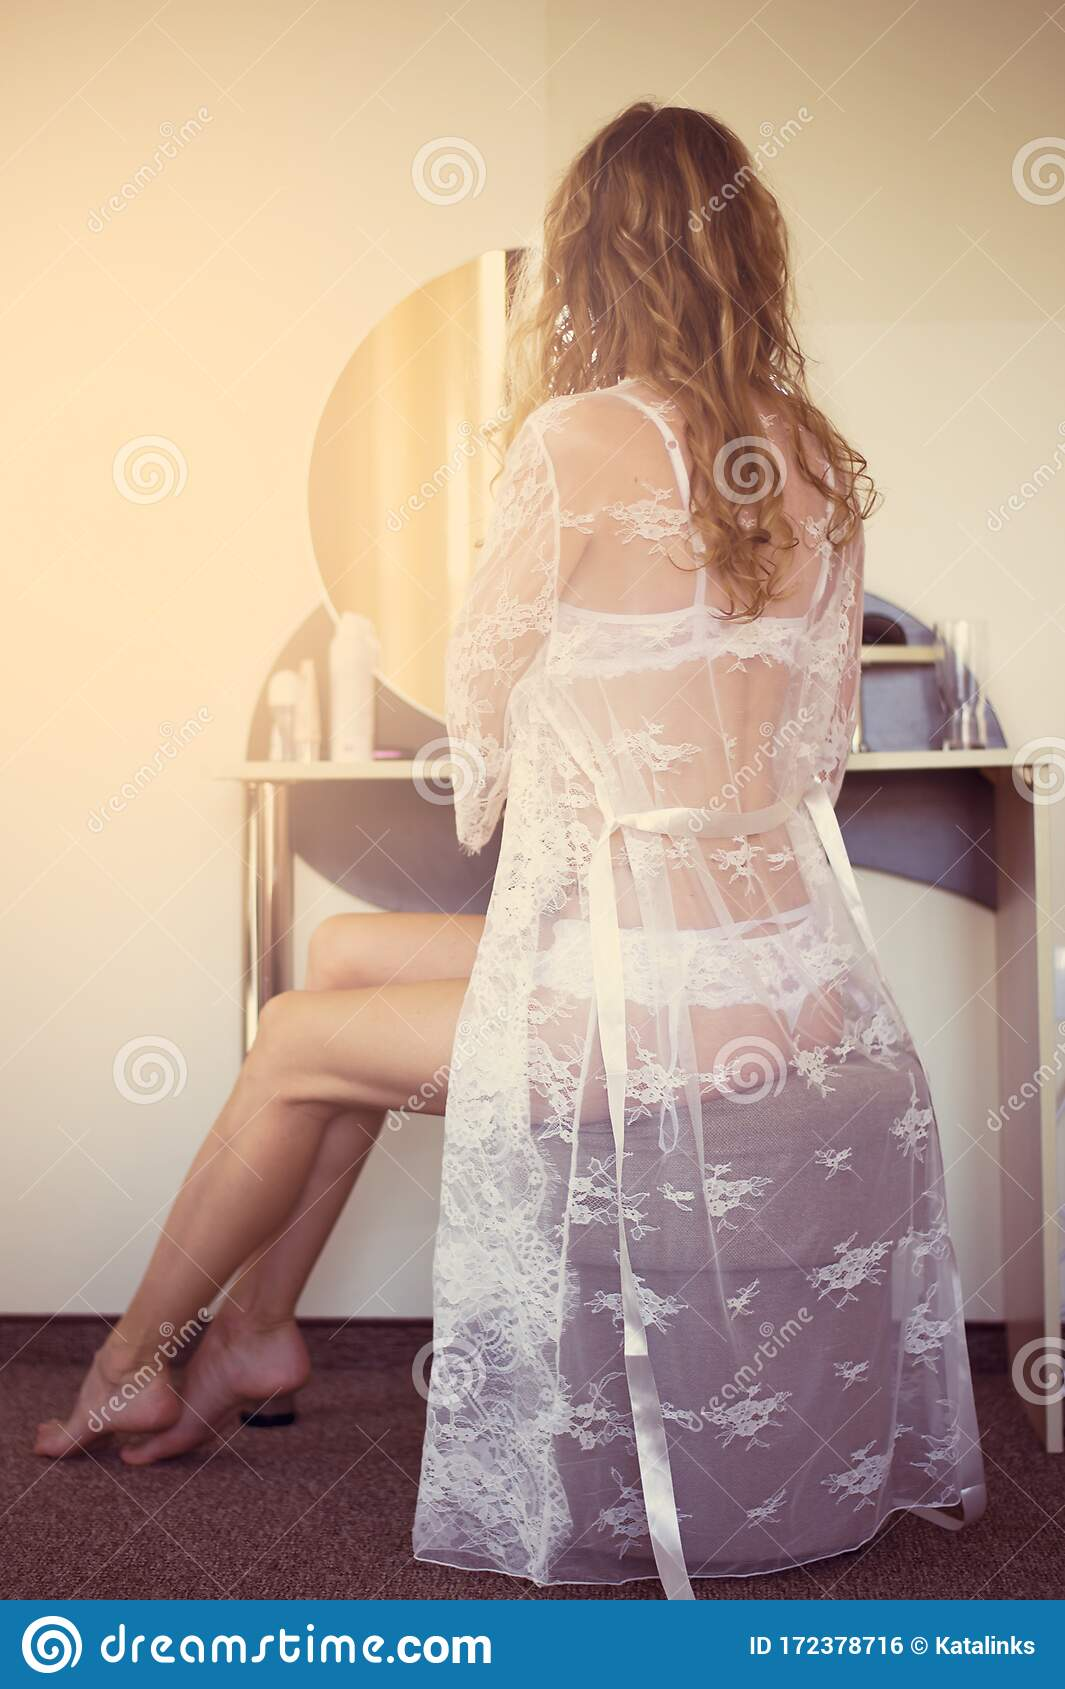 Beautiful Young Woman In White Lace Peignoir Sits In Front Of A Mirror In A Boudoir In Bedroom Stock Photo Image Of Ottoman Lace 172378716